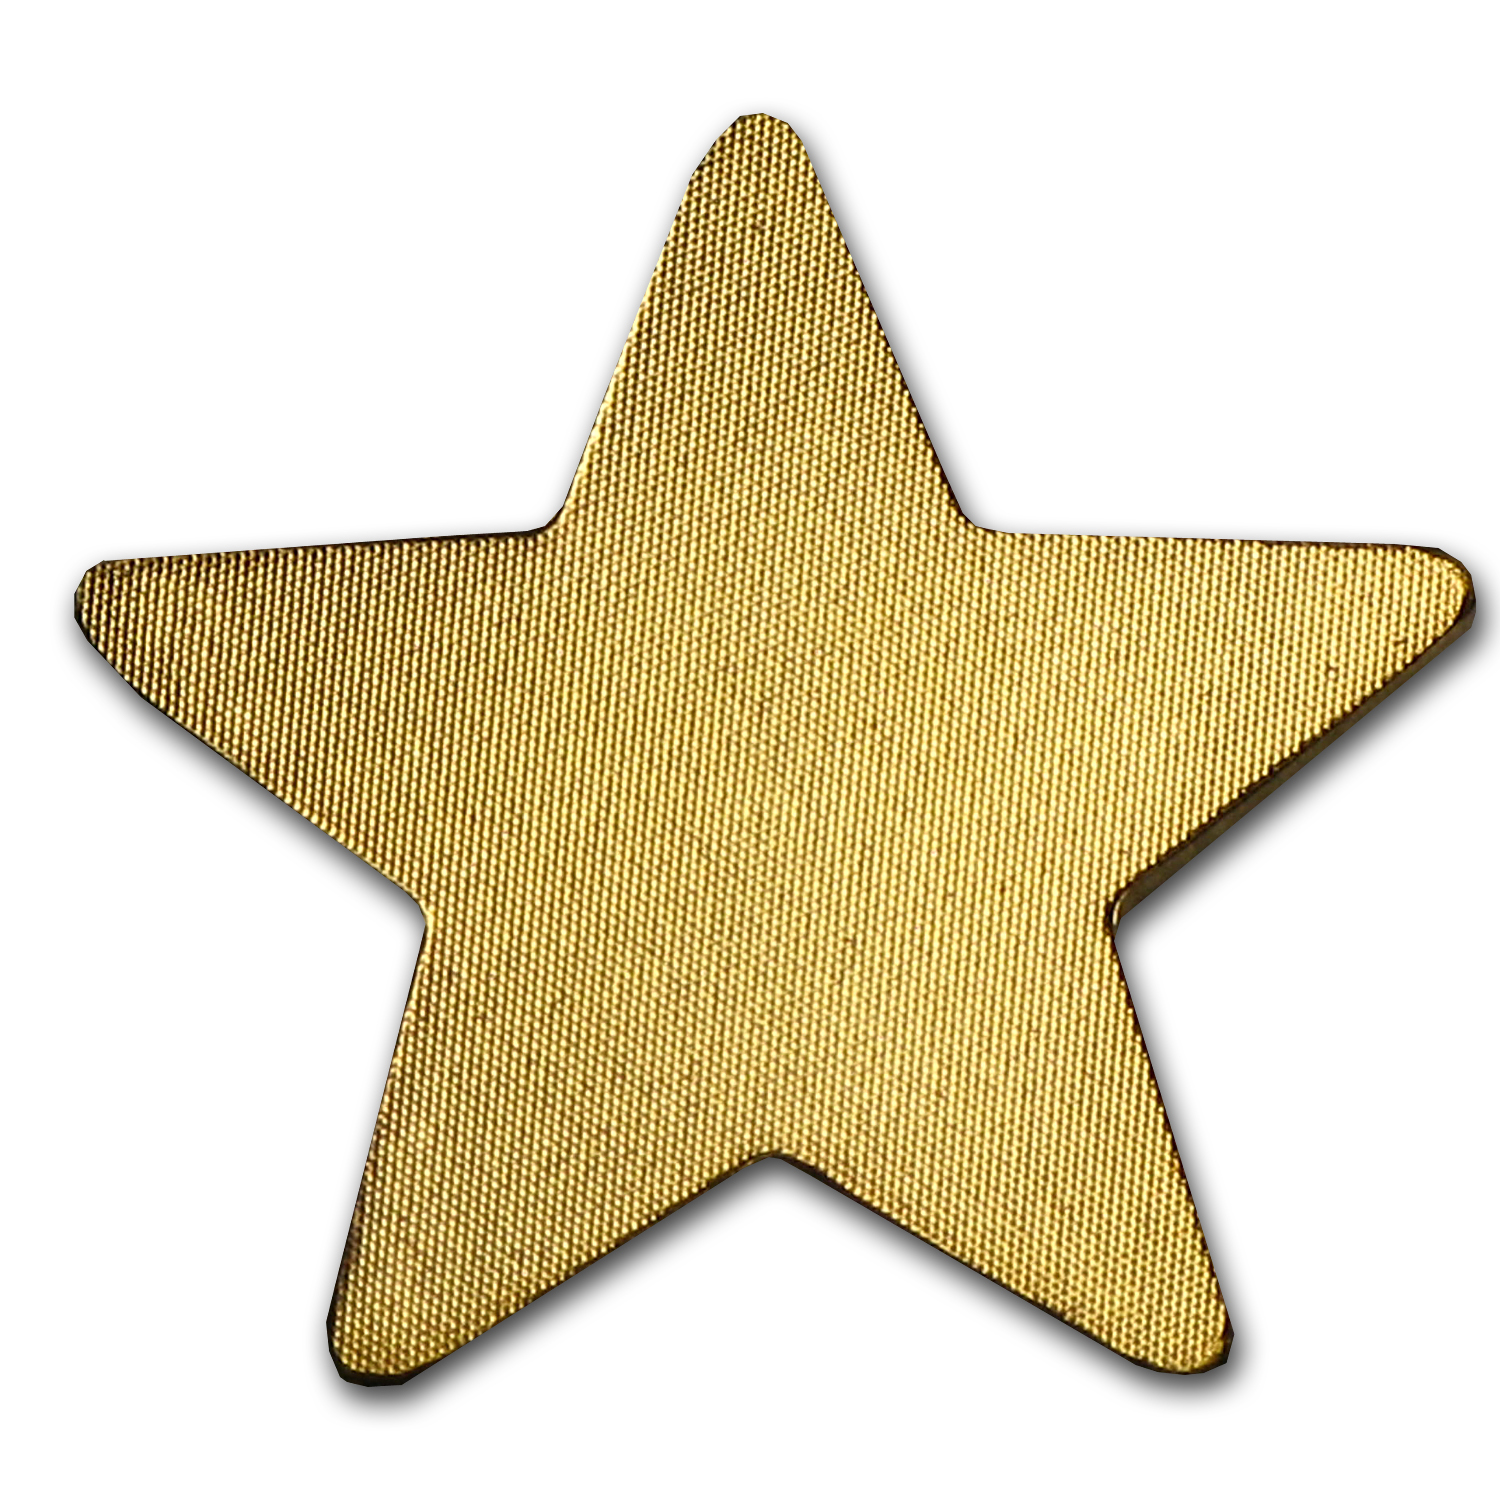 Palau Gold $1 Lucky Star Coin (1/2 gram of Pure Gold)